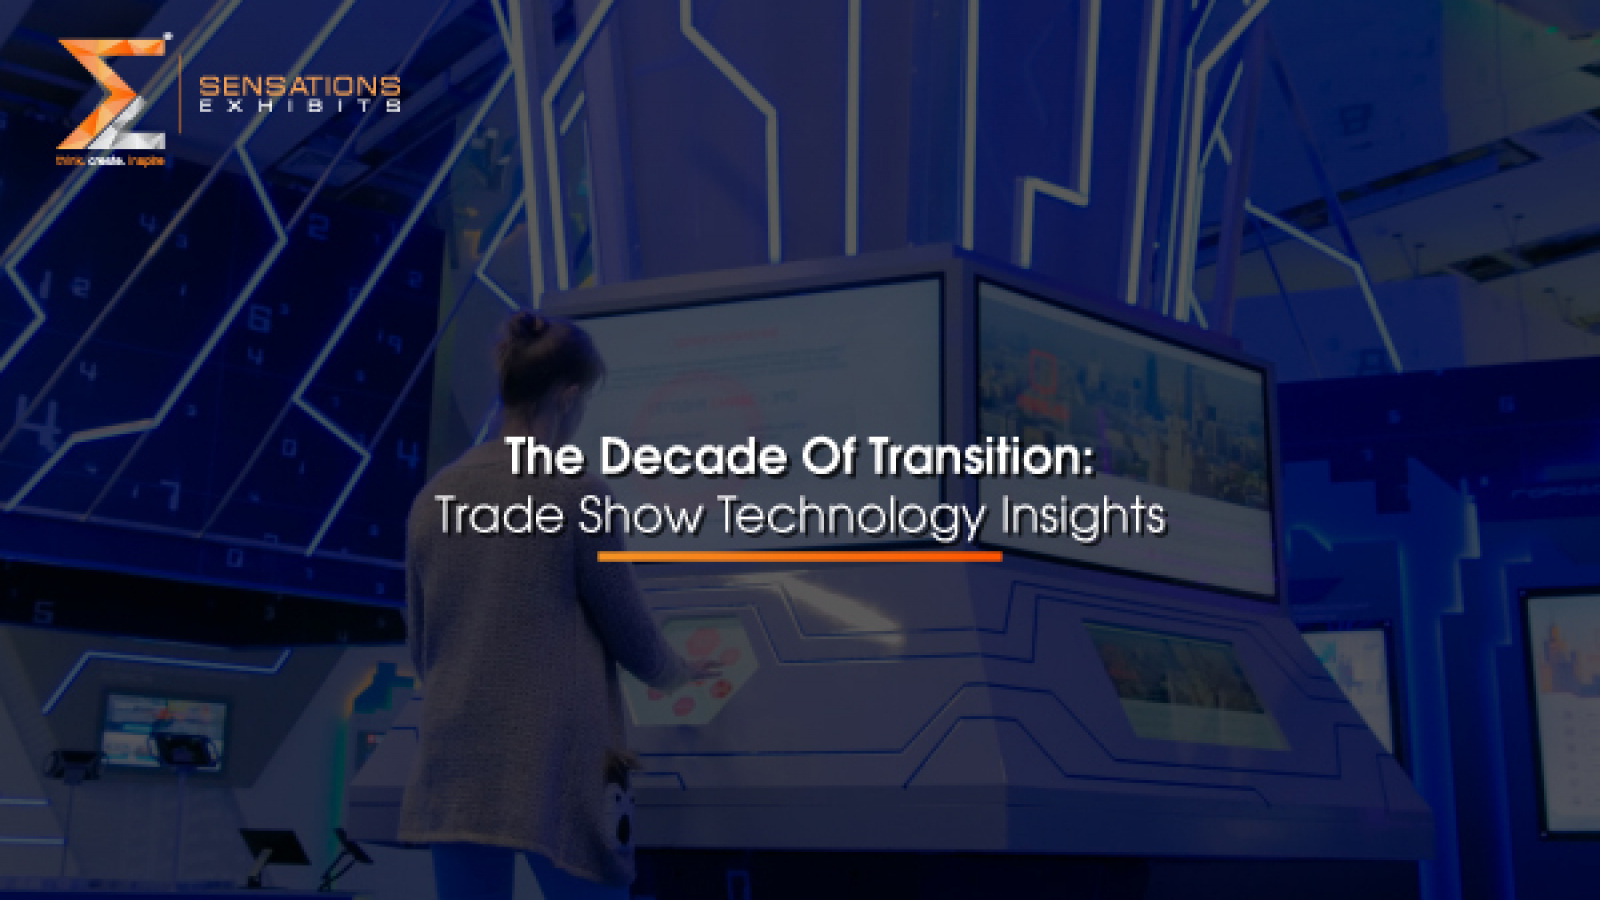 The Decade Of Transition Trade Show Technology Insights